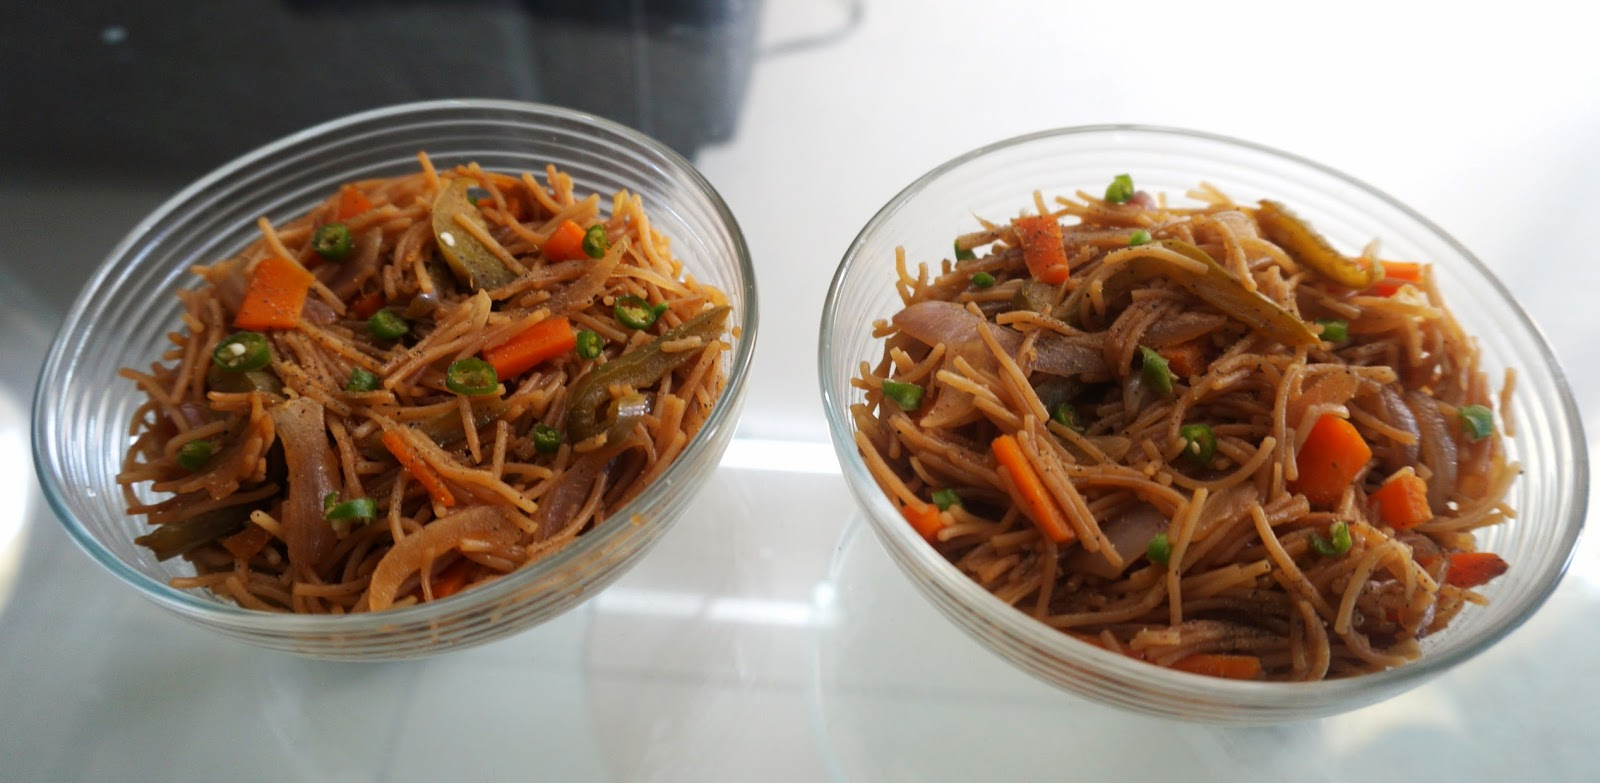 Sooji Noodles/Bambino/Vermicelli healthy breakfast recipe